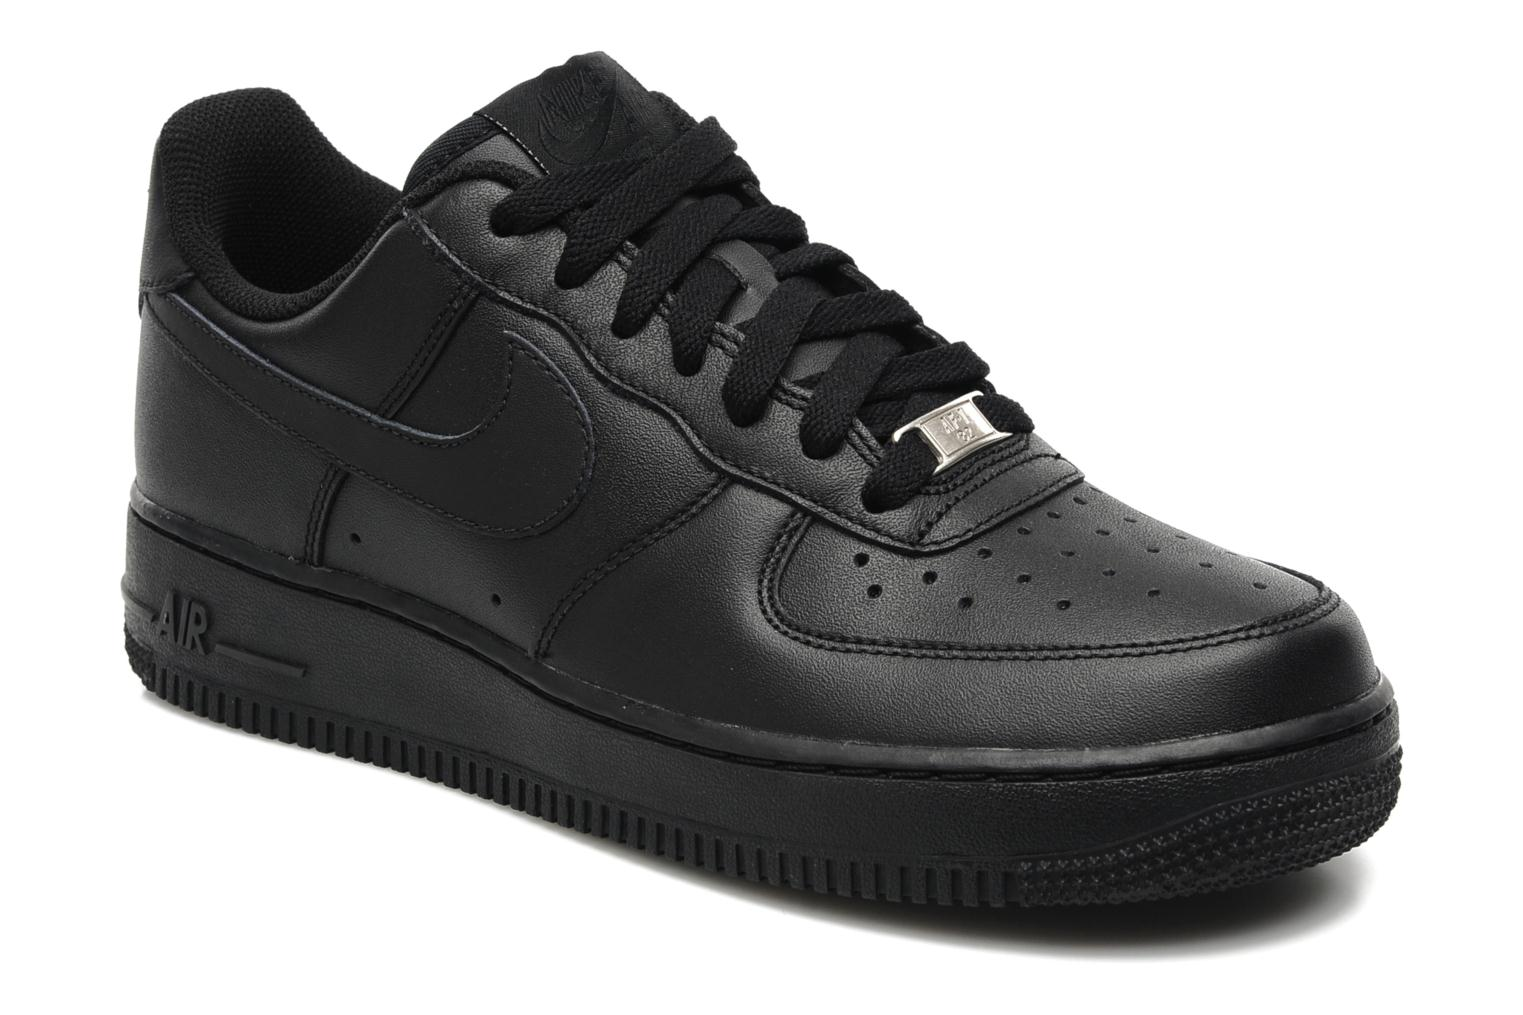 nike air force 1 07 preisvergleich die besten angebote. Black Bedroom Furniture Sets. Home Design Ideas